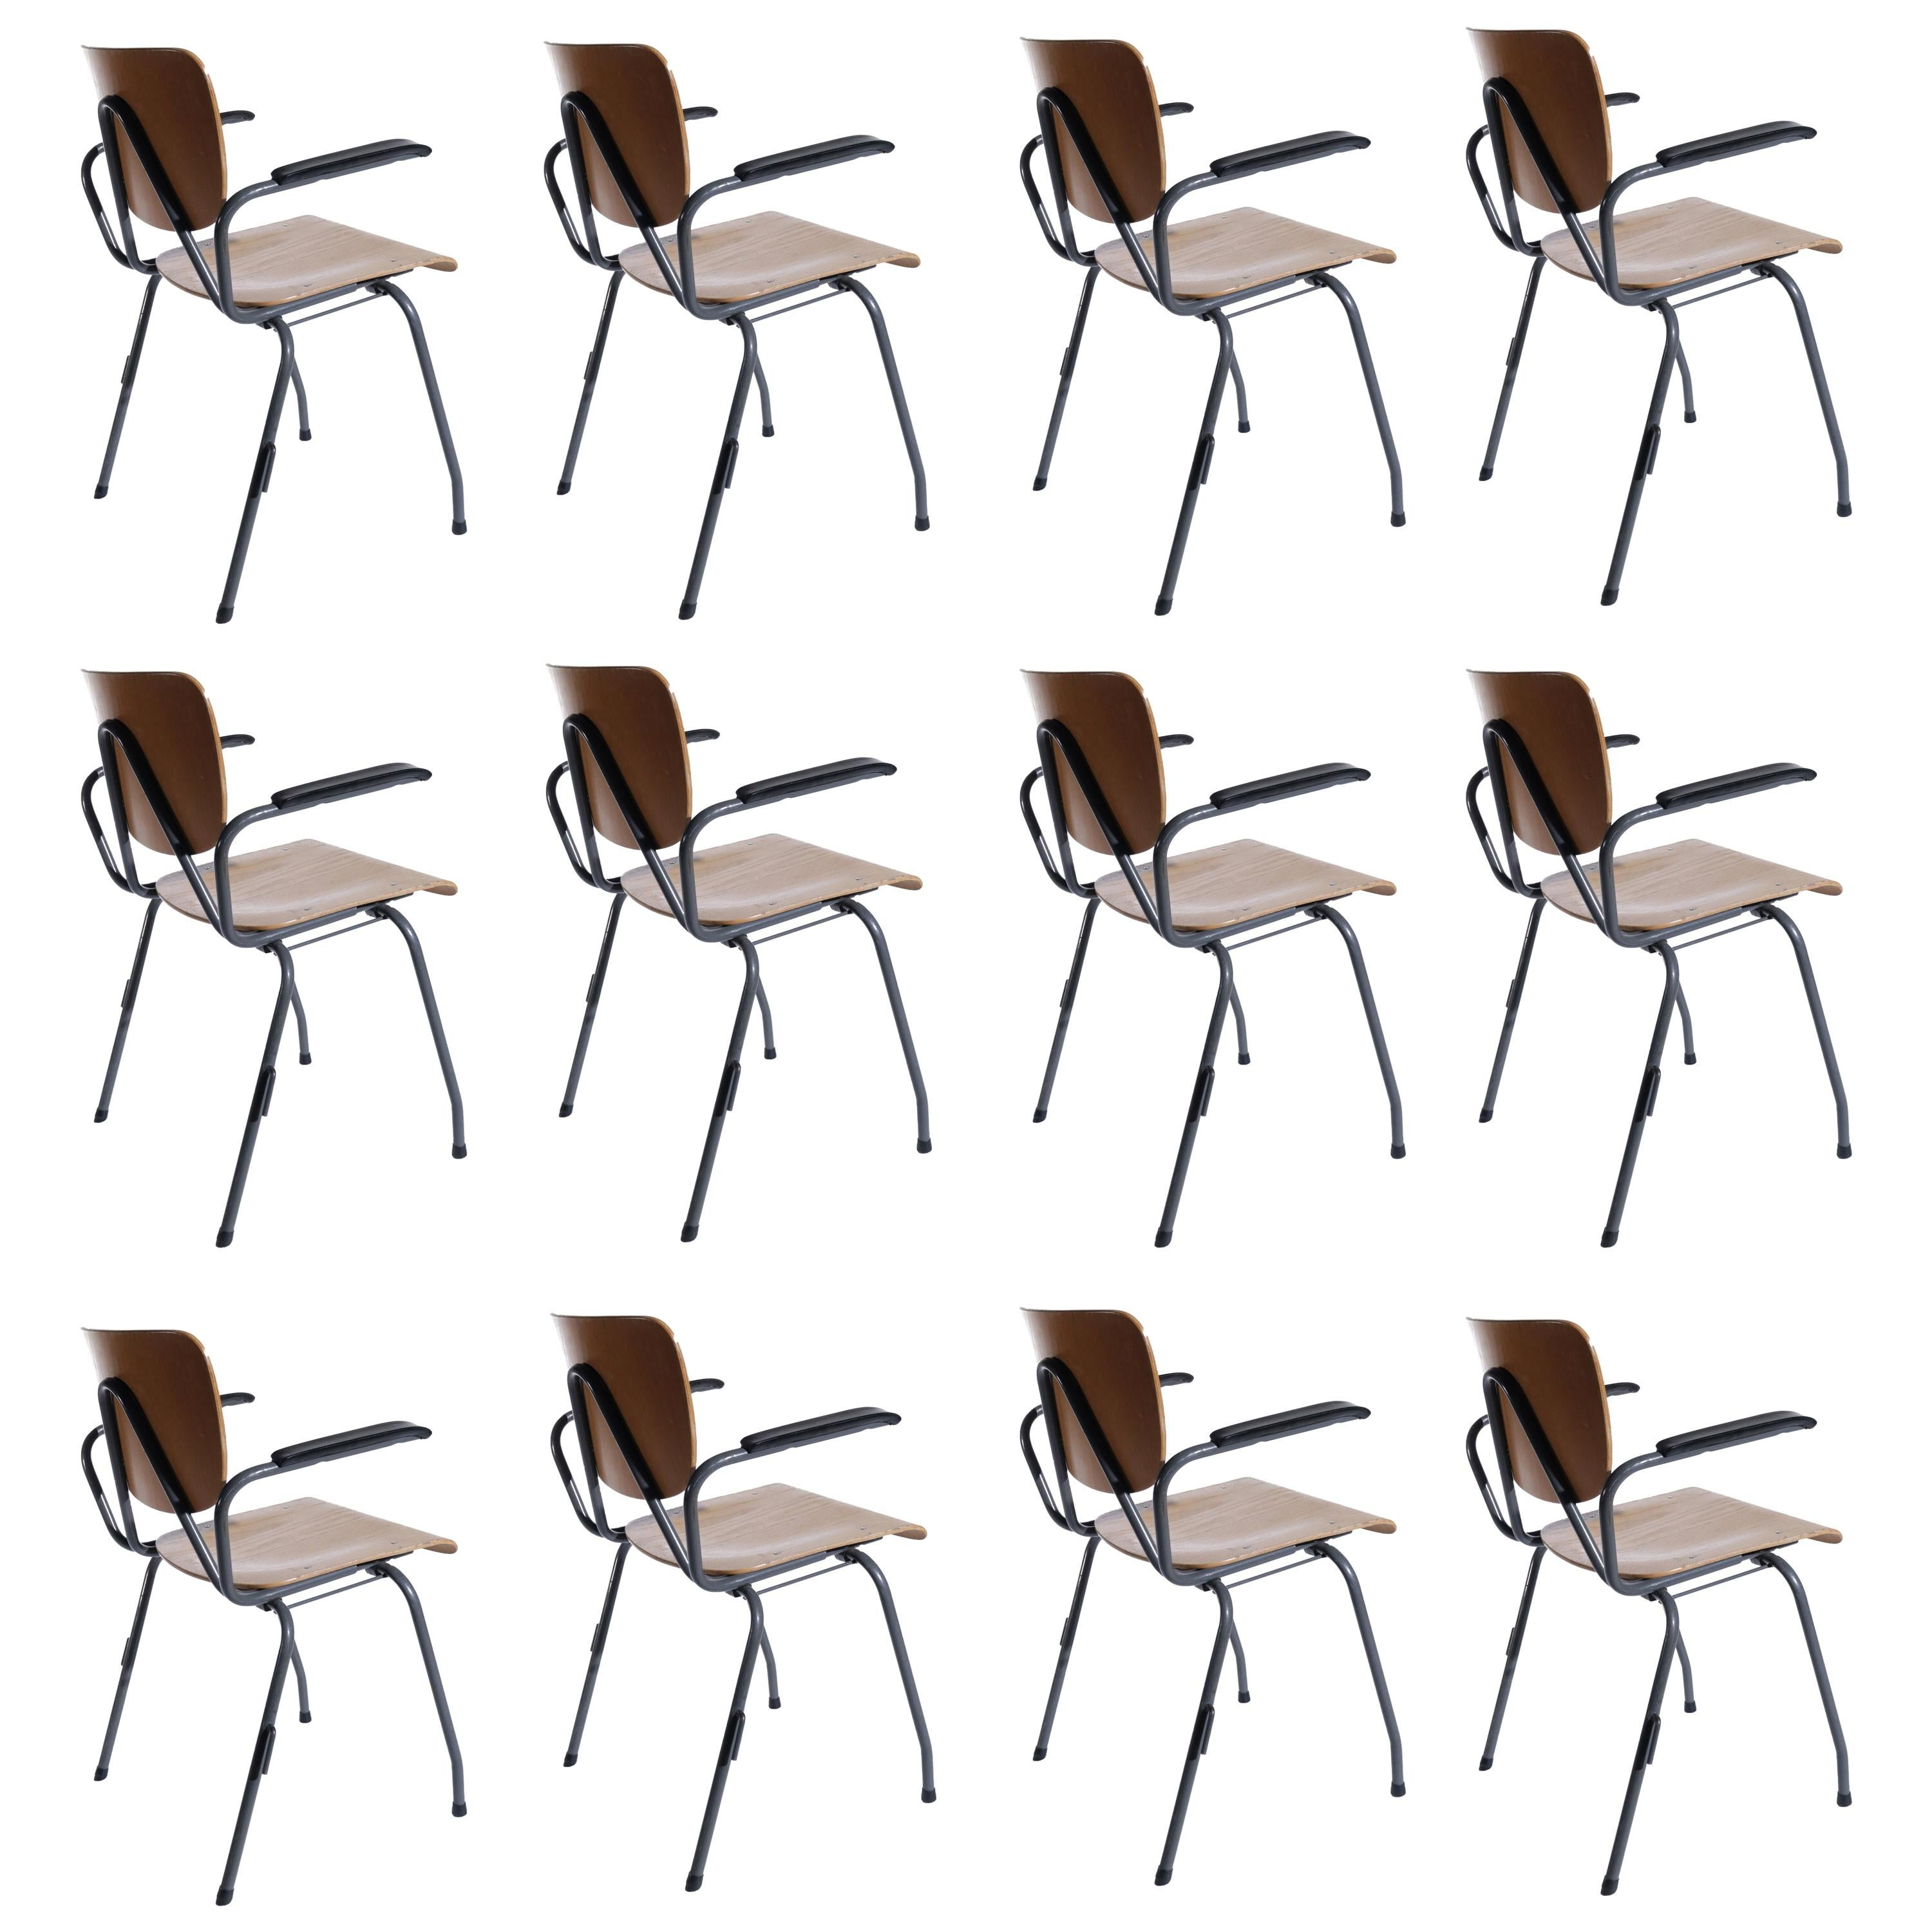 Dutch Design Kho Liang Ie for Car 1957 Stackable Chairs Model 305 with Armrest